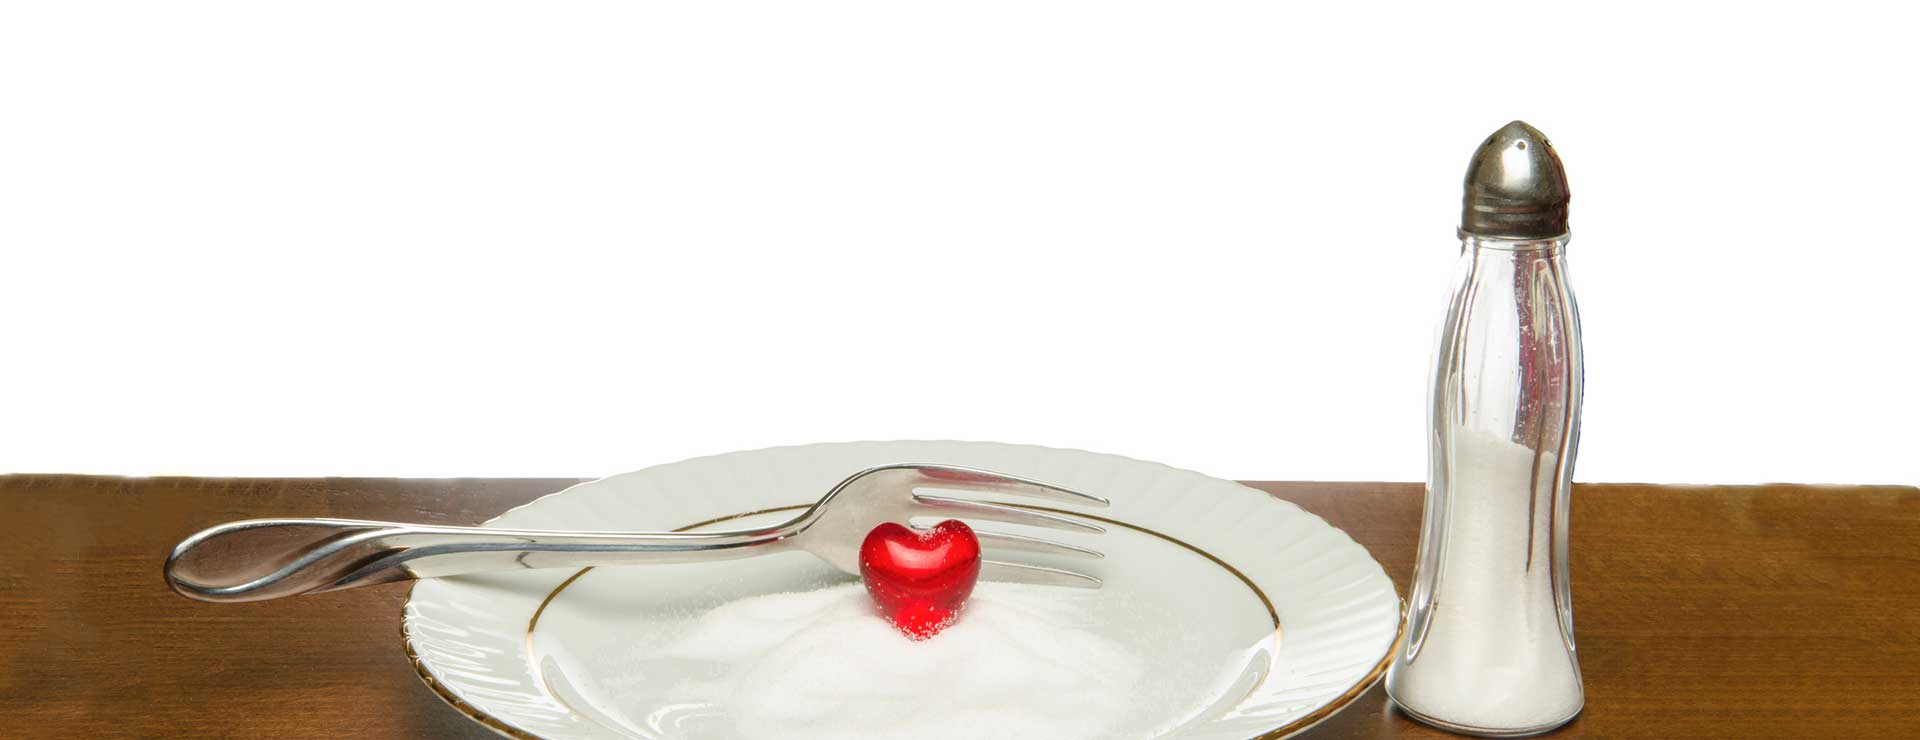 A plastic heart on a plate full of salt